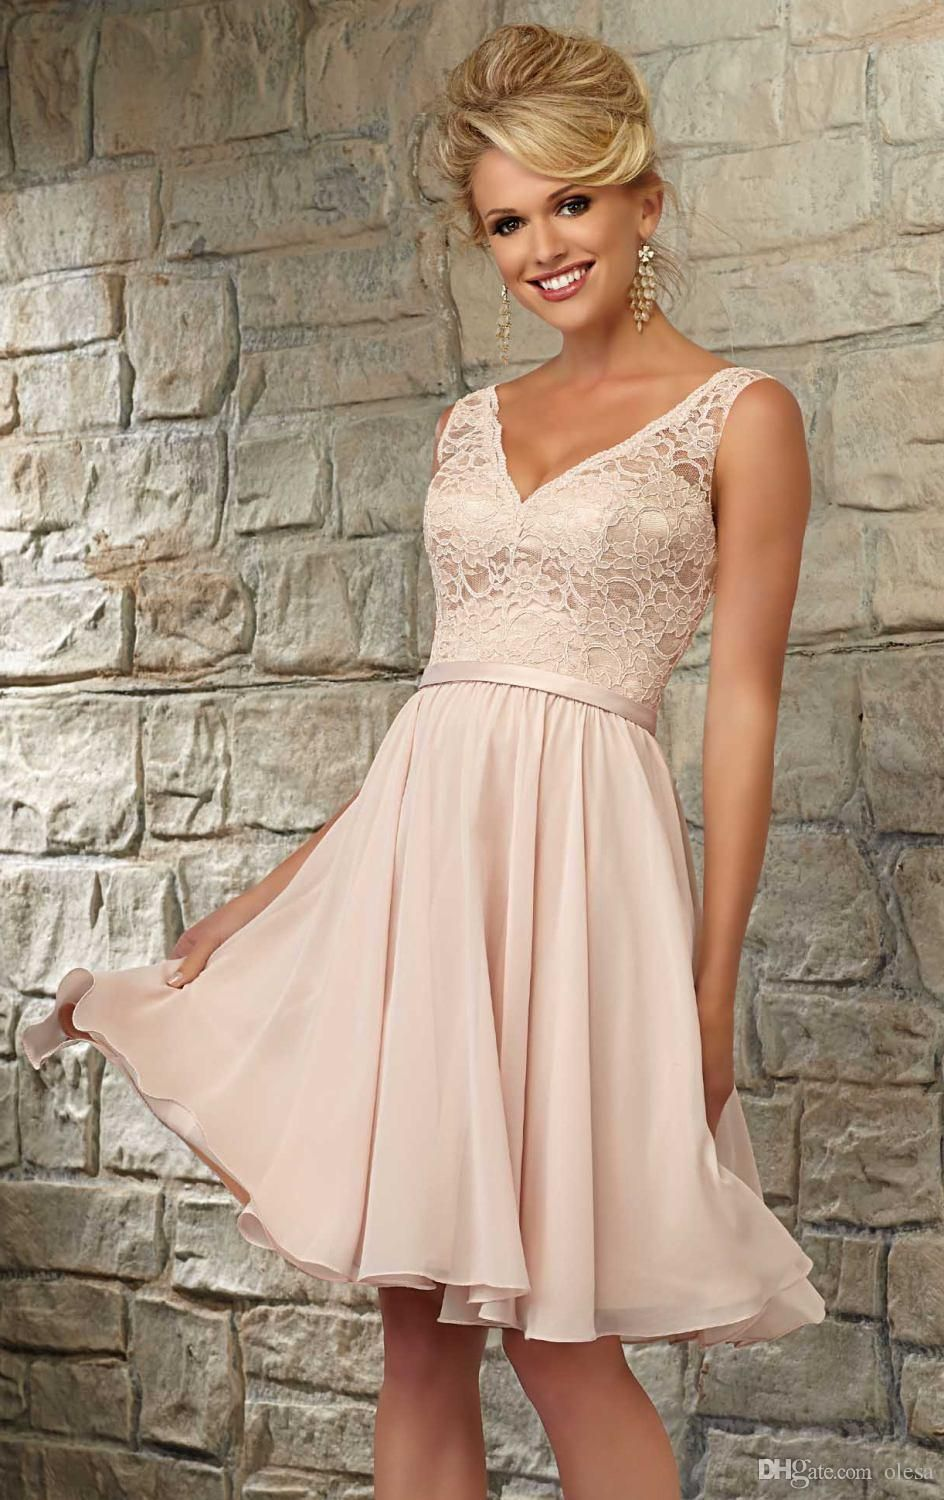 Champagne color for damas dresses short